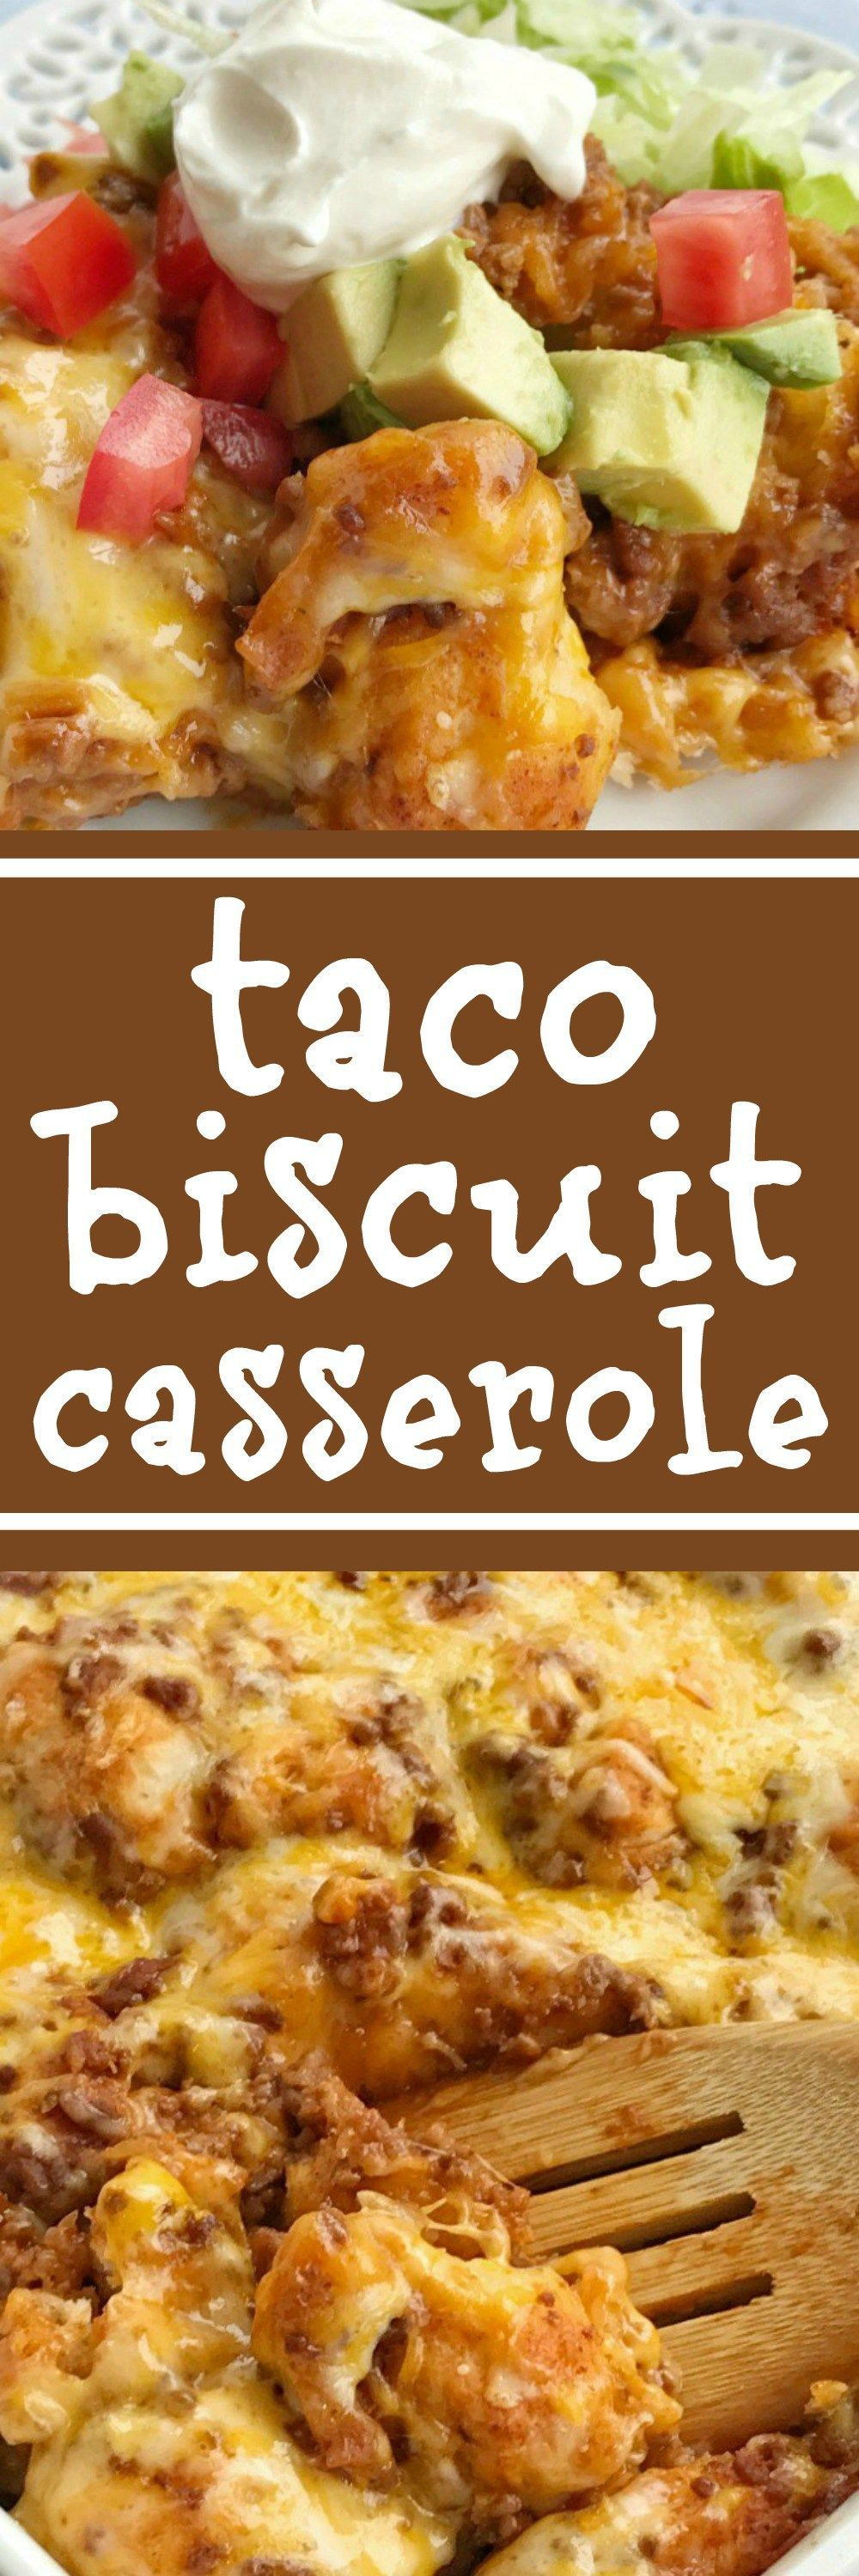 biscuit casserole is an easy & simple one pot meal. Puffed up refrigerated biscuits smothered in a beefy taco mixture and topped with melted cheese. Customize with your favorite taco toppings and you have a delicious dinner recipe that the entire family will love  